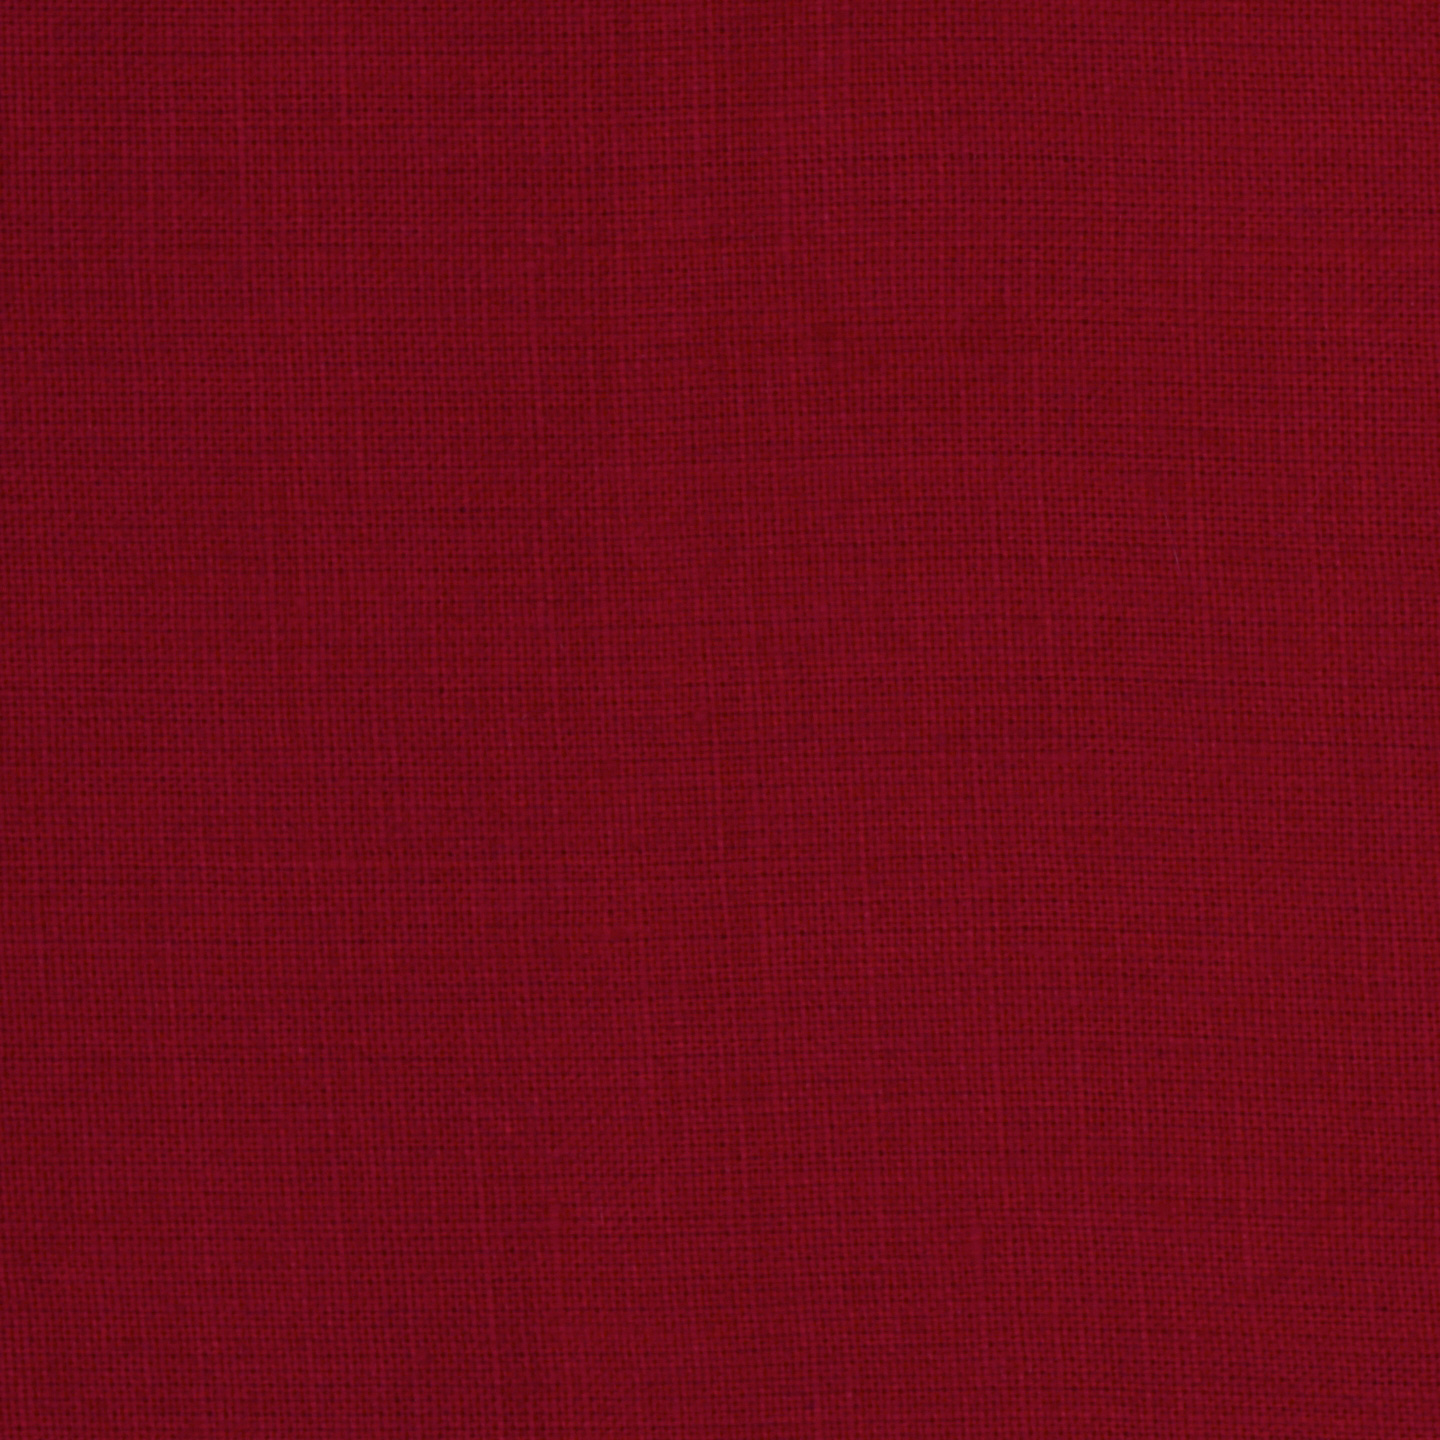 Medium Weight Linen Red Fabric